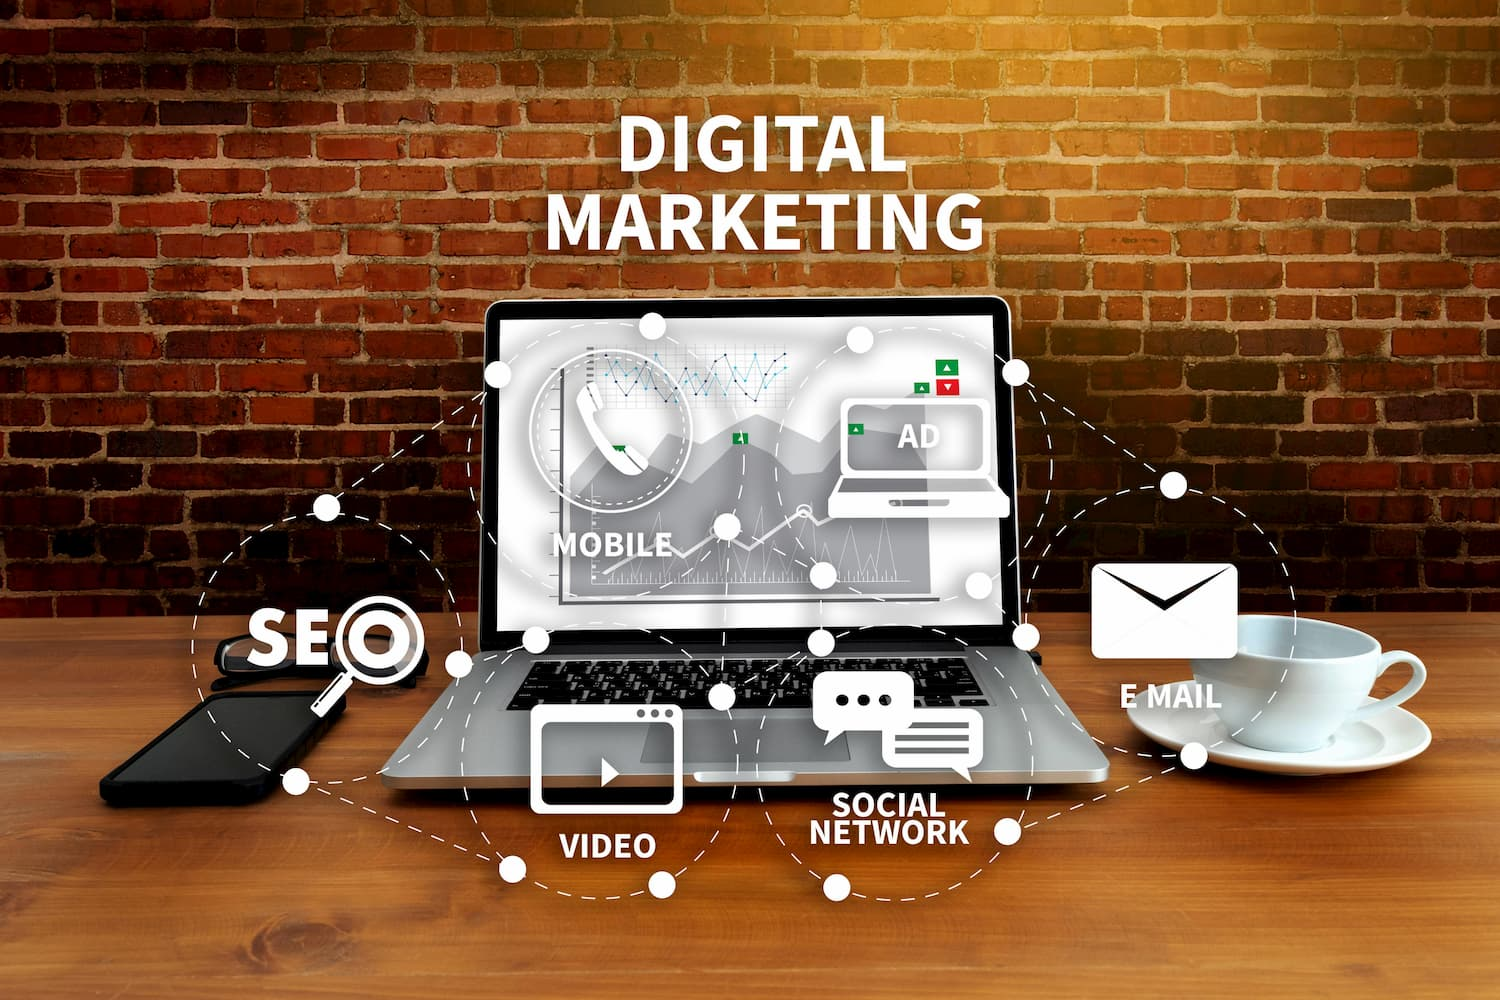 Mitos e curiosidades do Marketing Digital